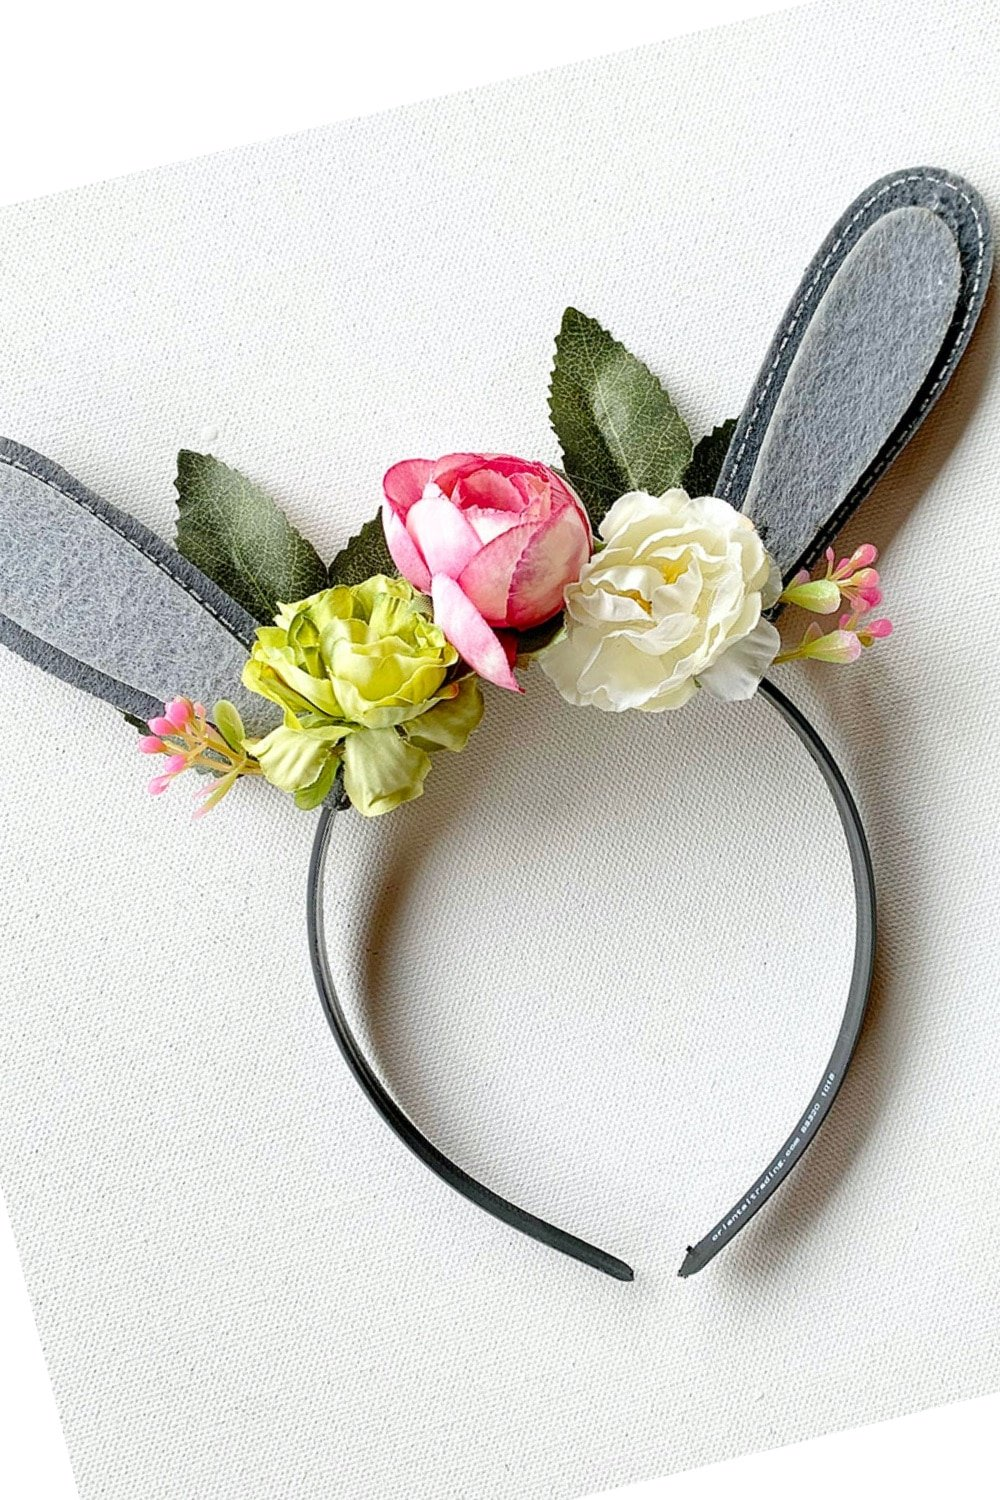 Floral Woodland Bunny Ears Headband 38